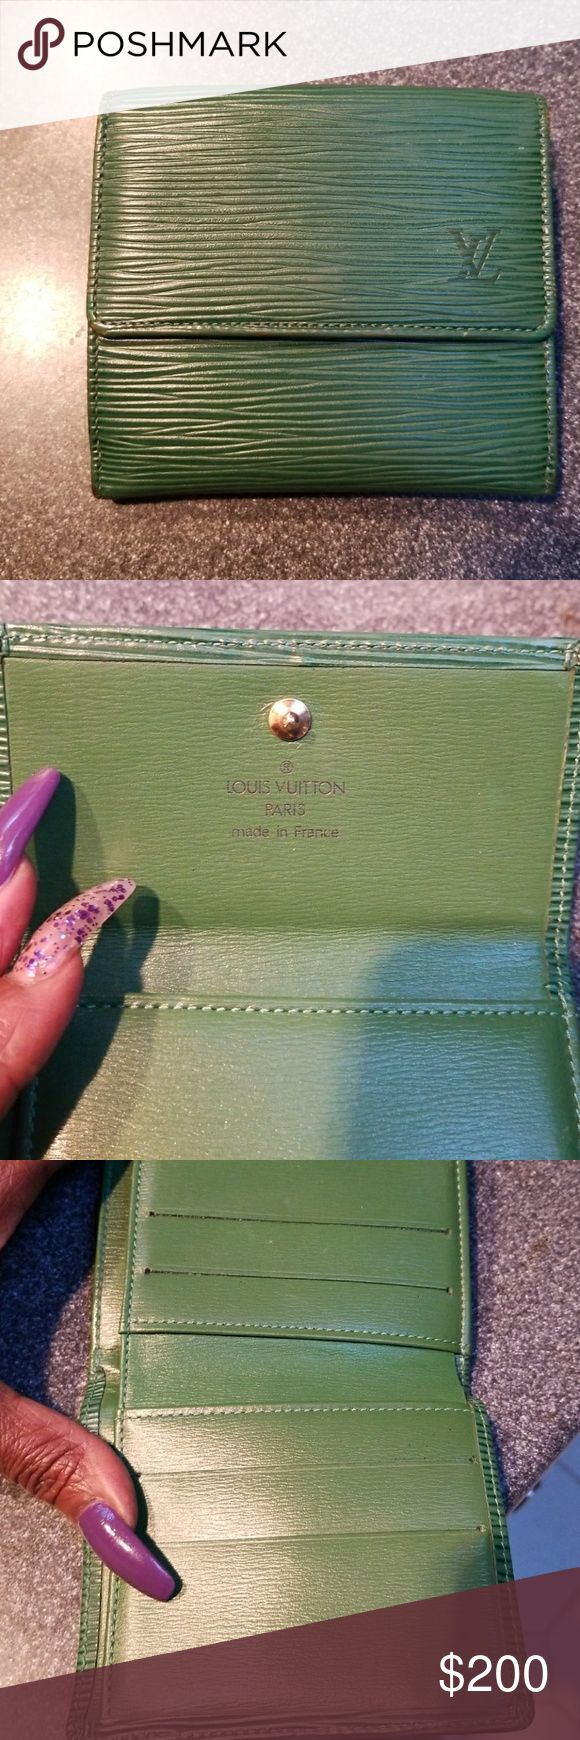 Authentic epi wallet Louis vuition epi wallet in green with datecode(trade price higher)regular wear on corners no tears or rips Louis Vuitton Bags Wallets